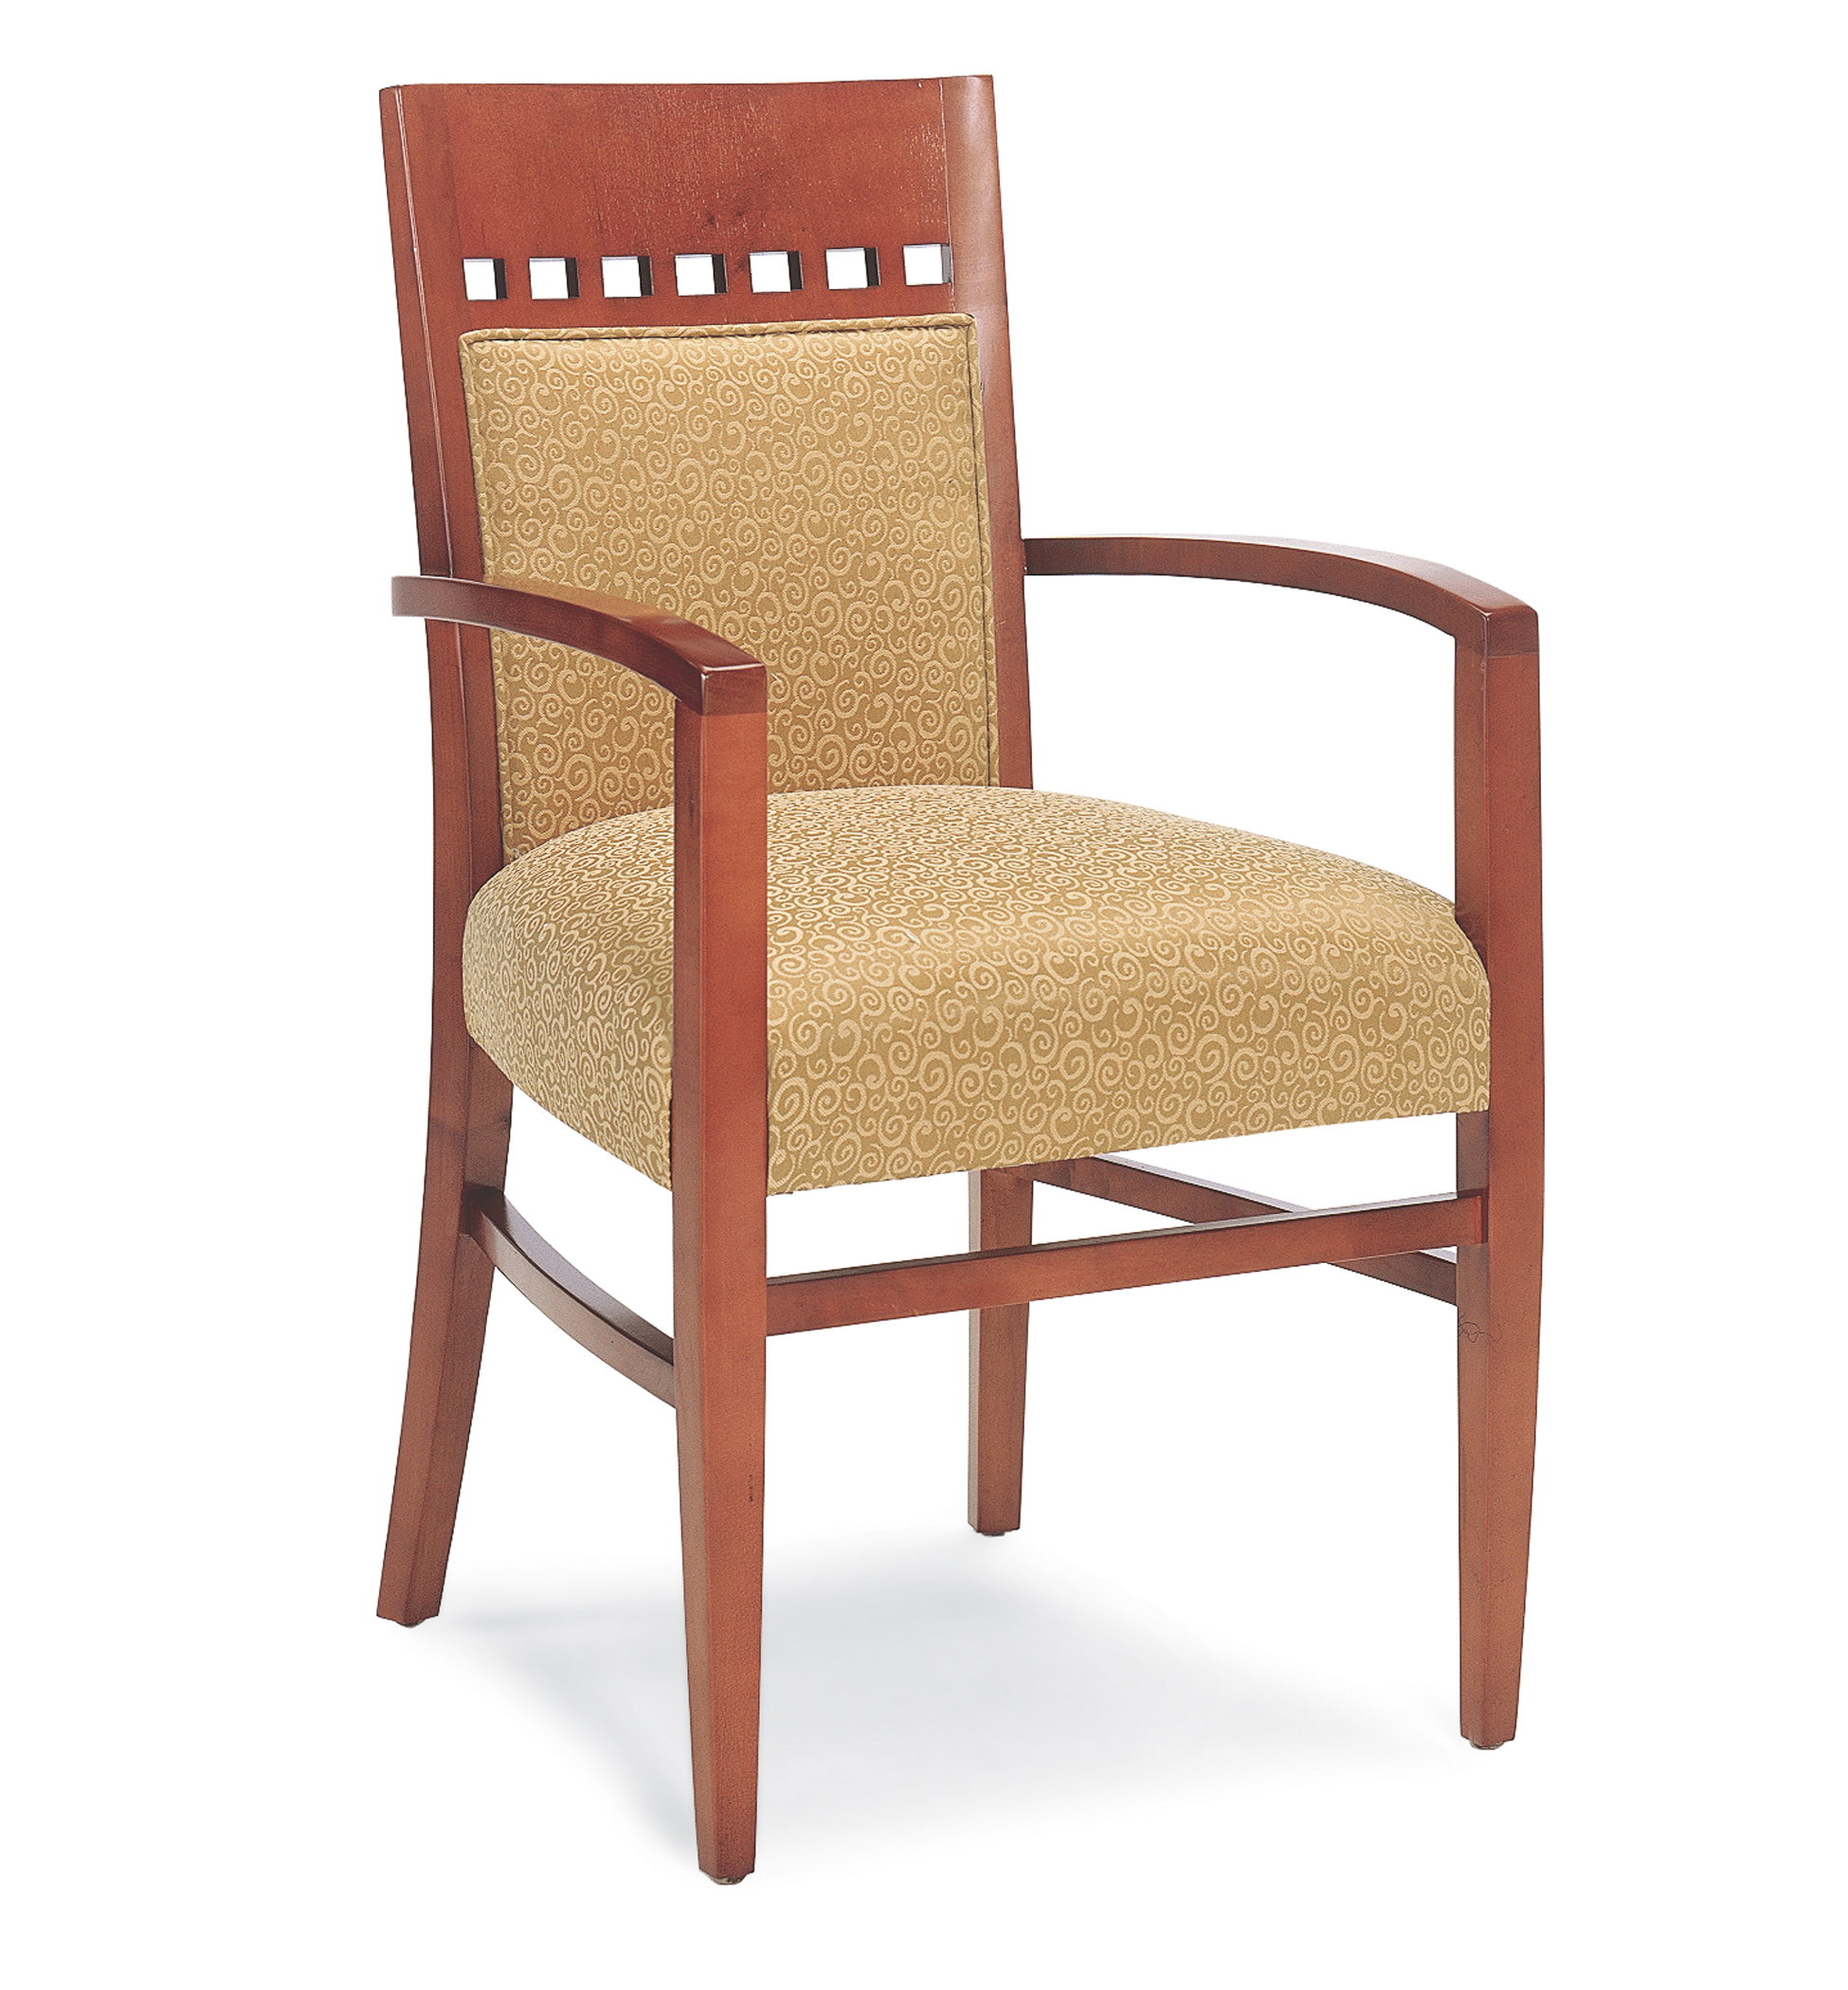 wooden chairs with arms india pink office south africa t 2985 wood arm chair